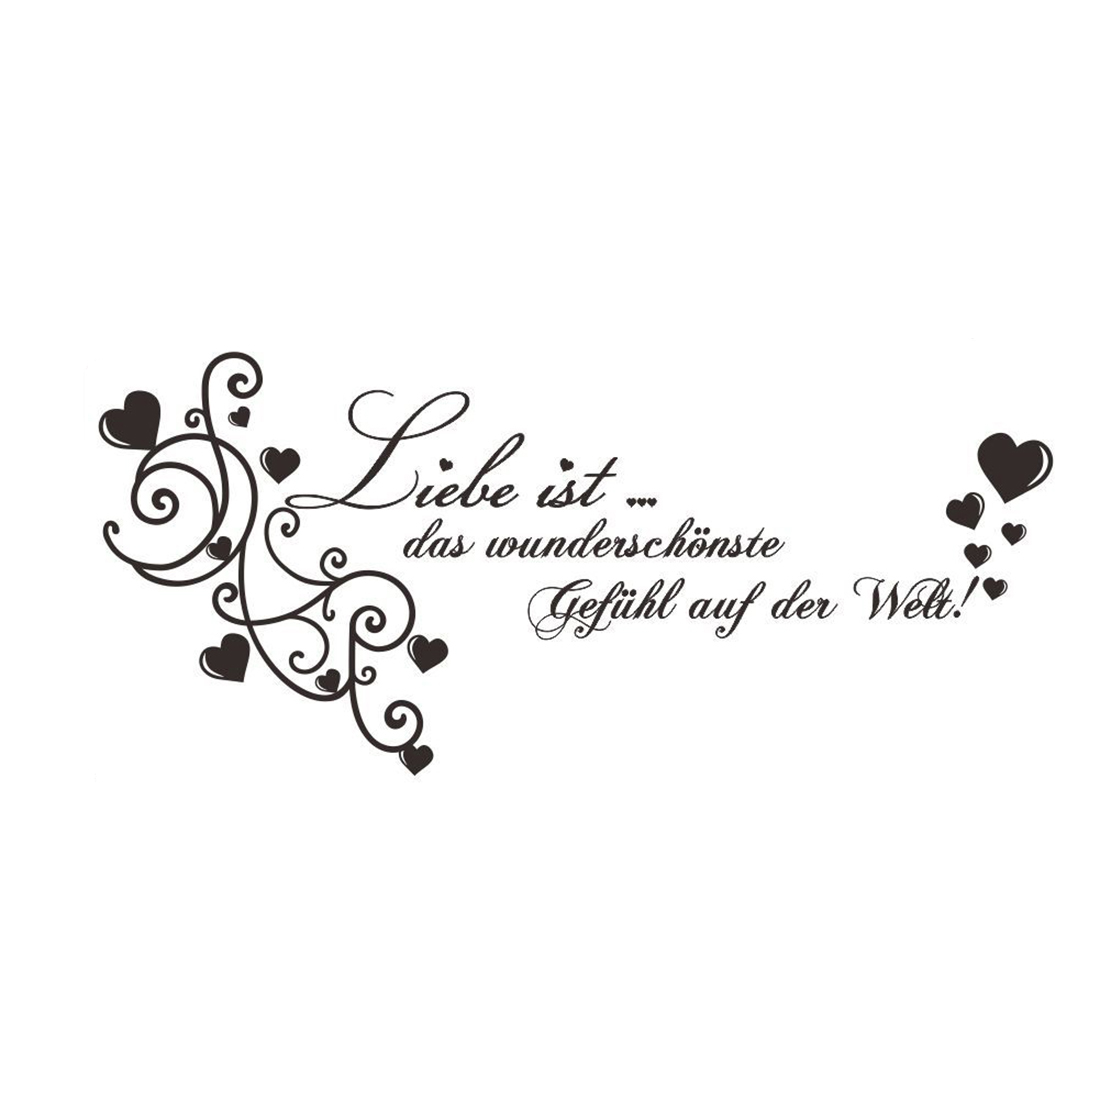 German Hearts Pattern Water Resistant Wall Sticker Art Decal Room Decor 50x41cm